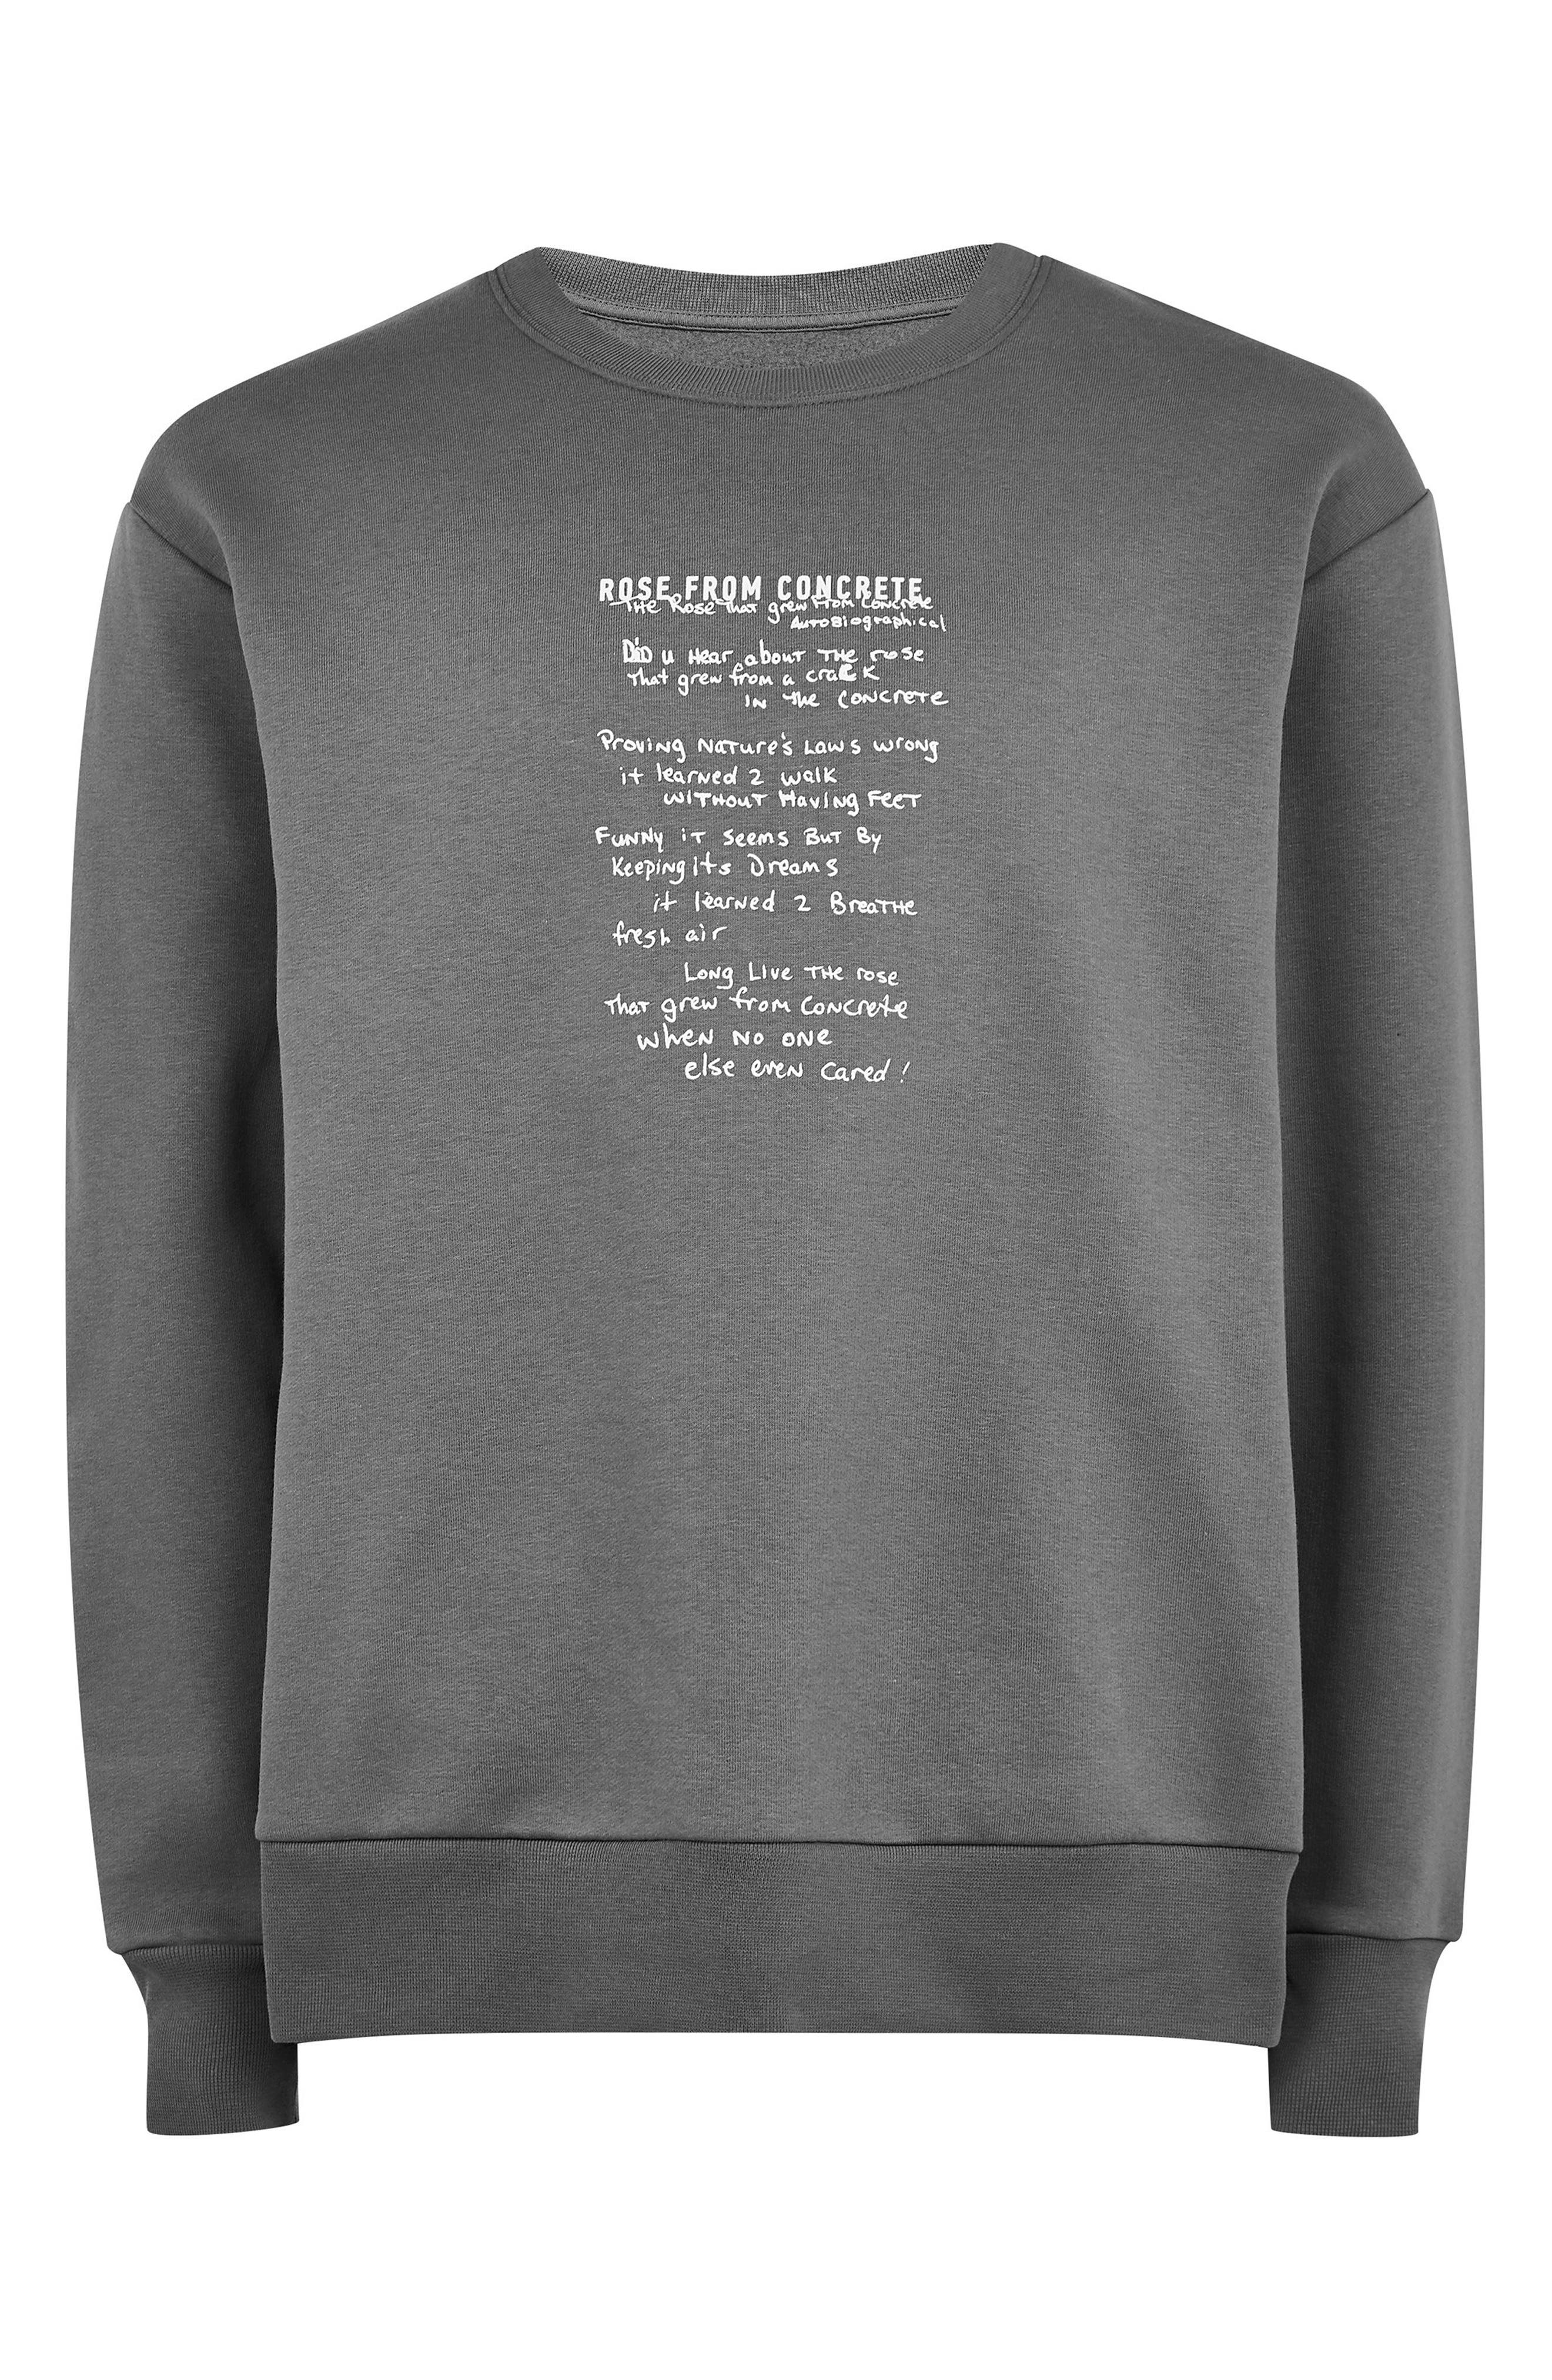 TOPMAN, 2Pac The Rose That Grew from Concrete Graphic Sweatshirt, Alternate thumbnail 3, color, GREY